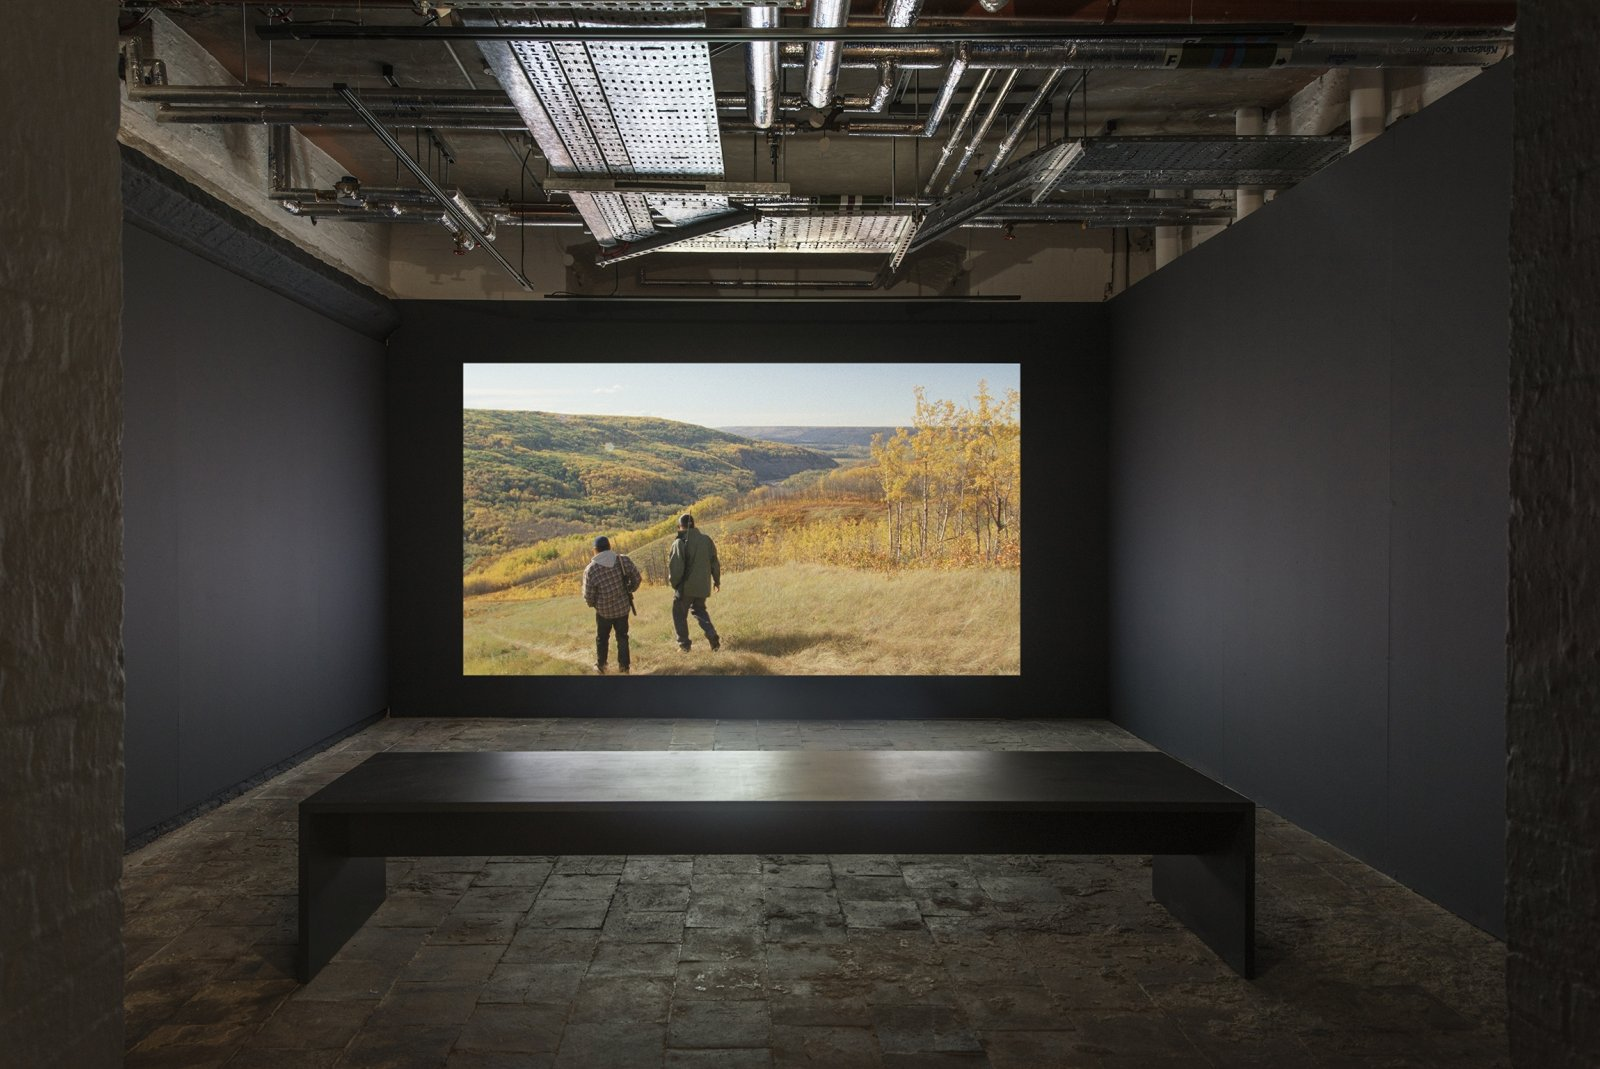 Brian Jungen and Duane Linklater, Modest Livelihood, 2012, super 16mm film, transferred to blu-ray, 50 minutes, silent. Installation view, Beautiful world, where are you?, St. George's Hall, Liverpool Biennial, 2018